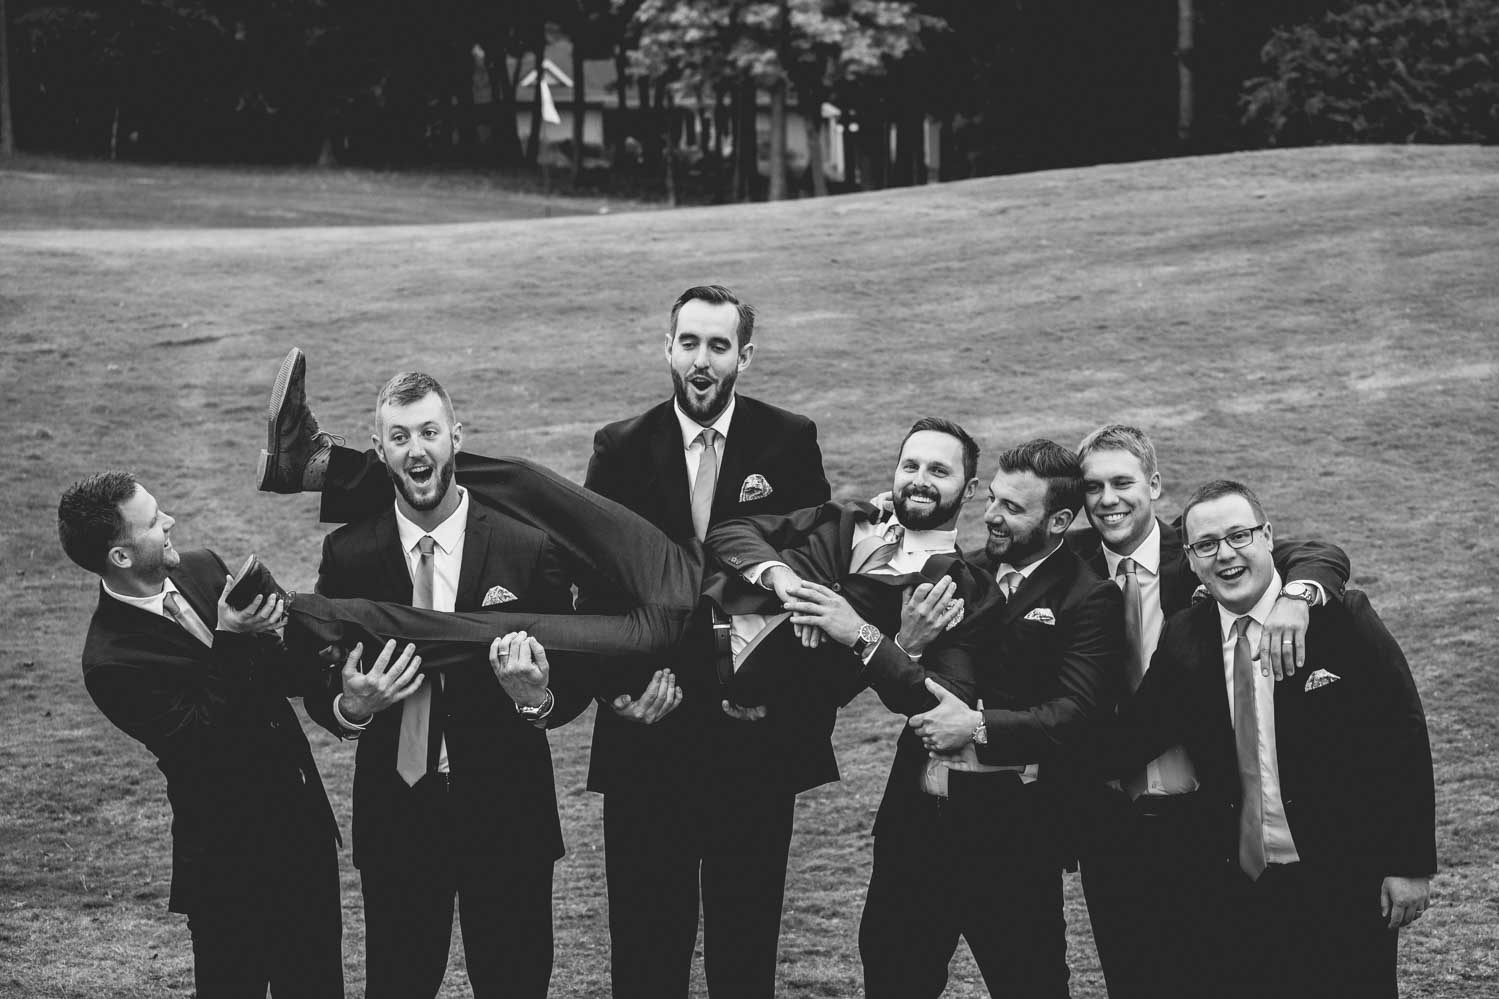 Groomsmen take a hilarious group photo during a wedding at Macgregor Downs Country Club.